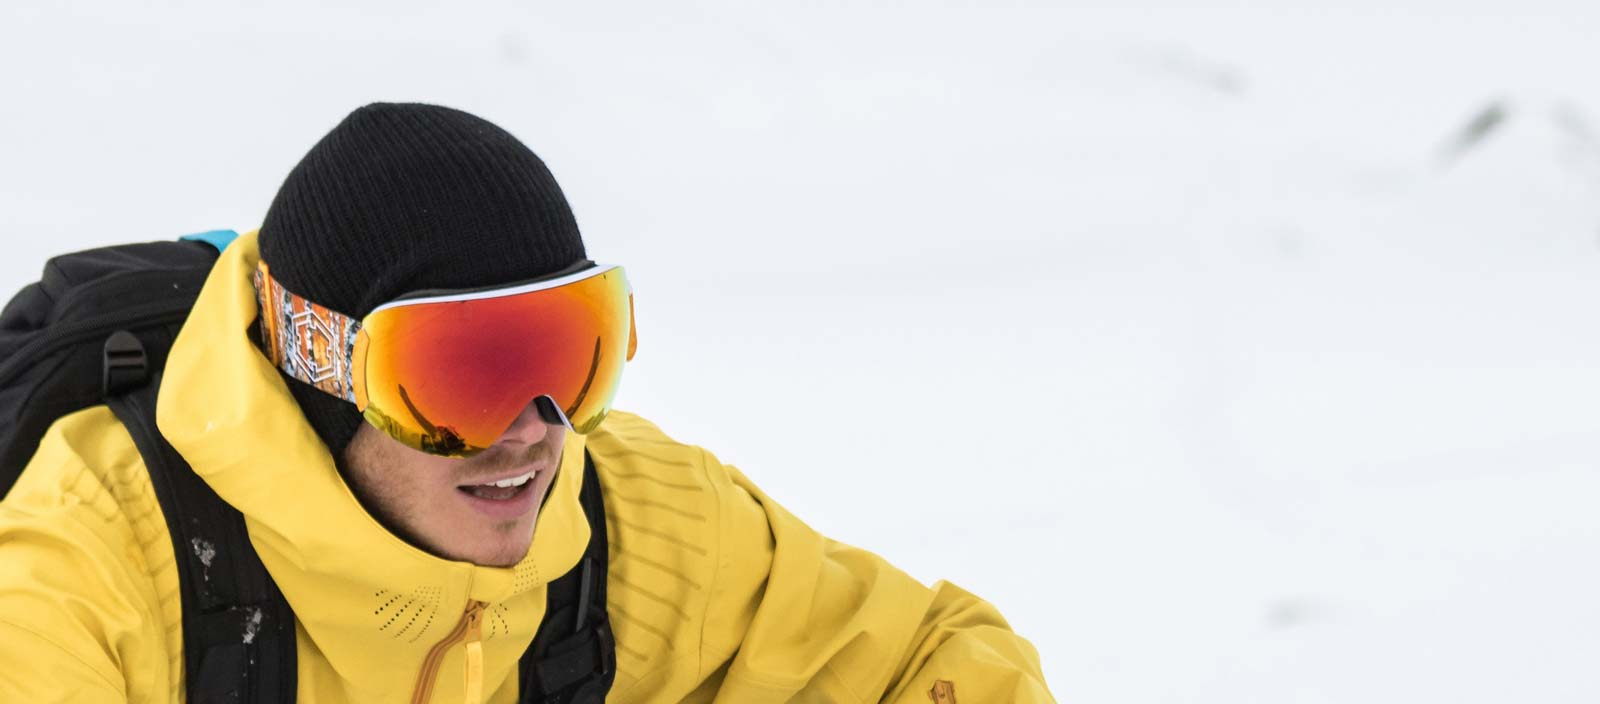 A freerider climbing wearing an Out Of Open ski goggle